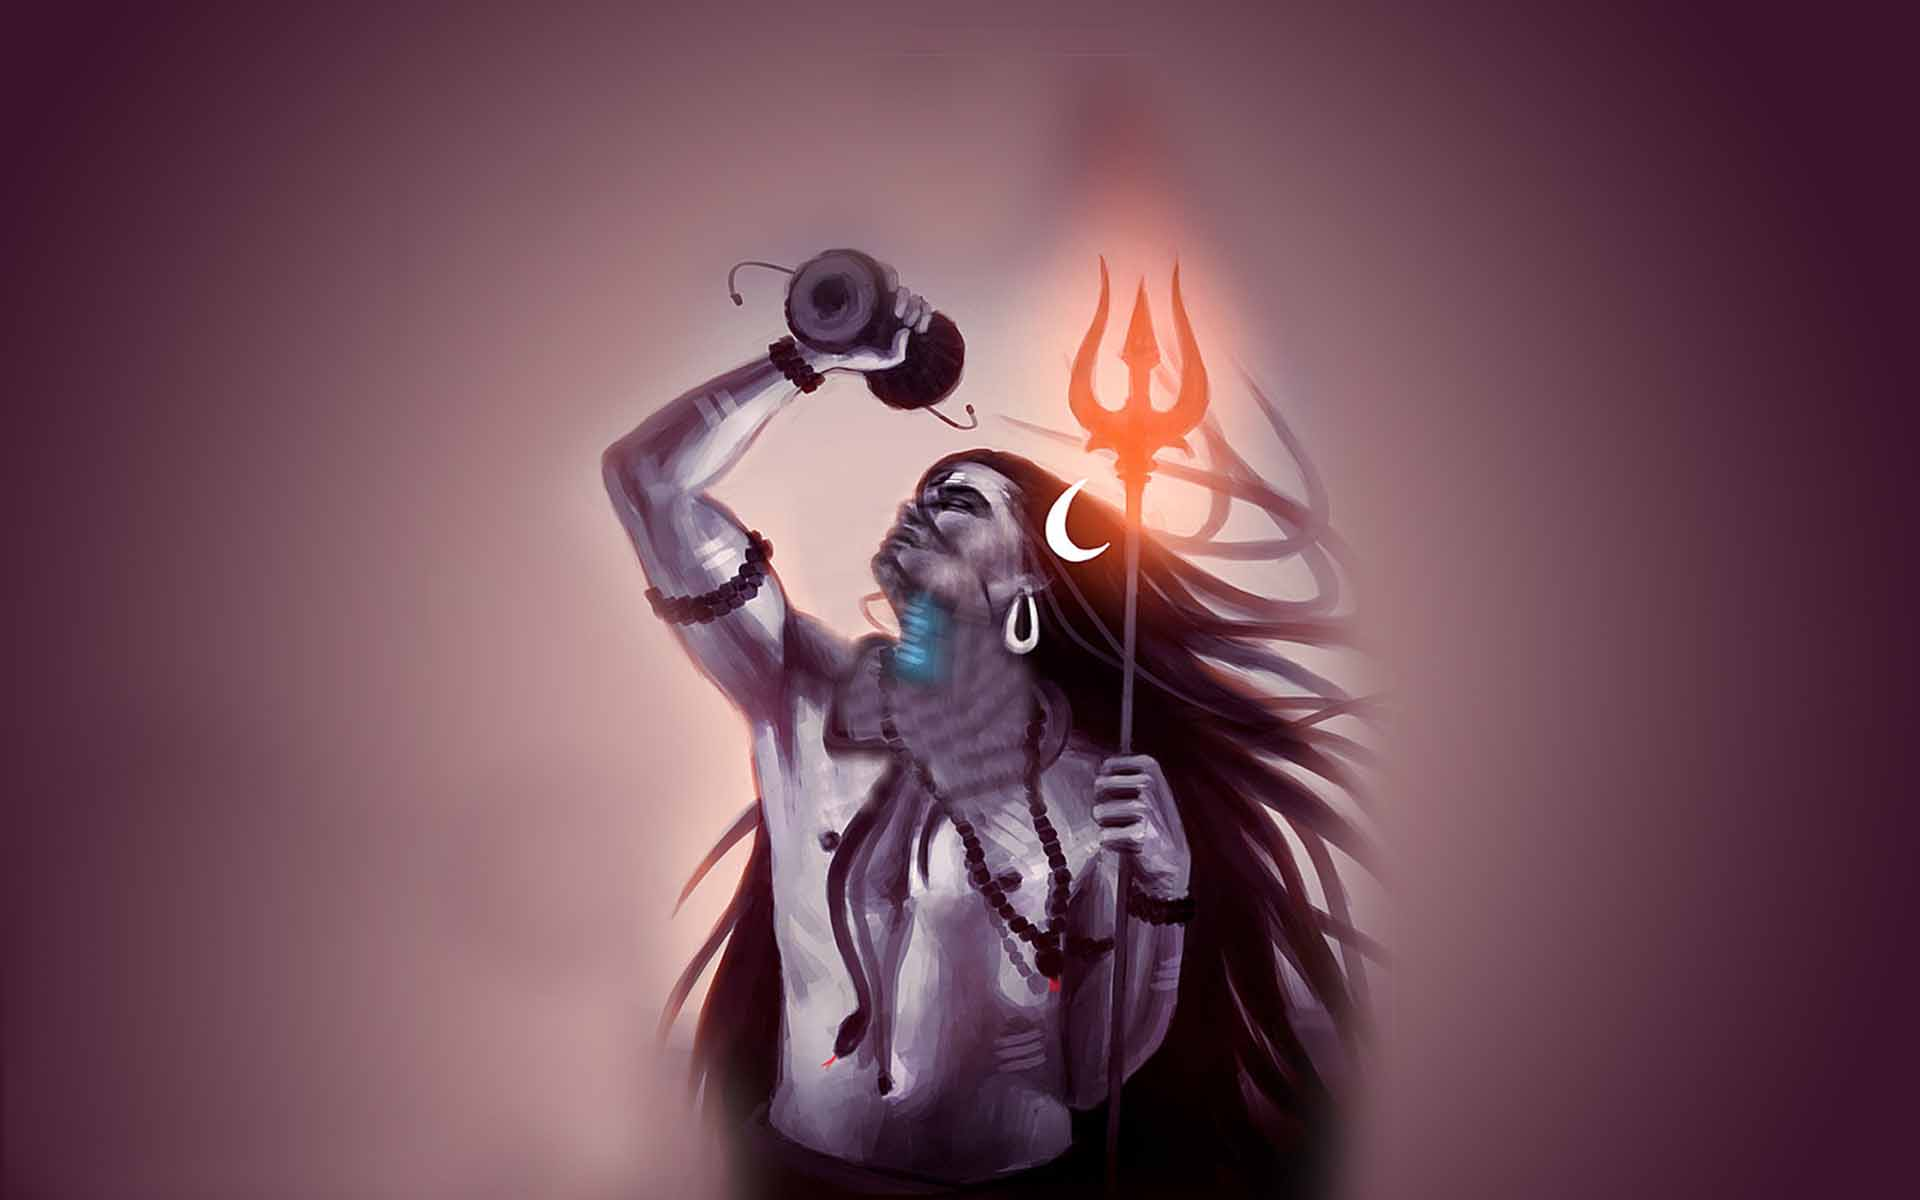 ganesh hd wallpaper free download